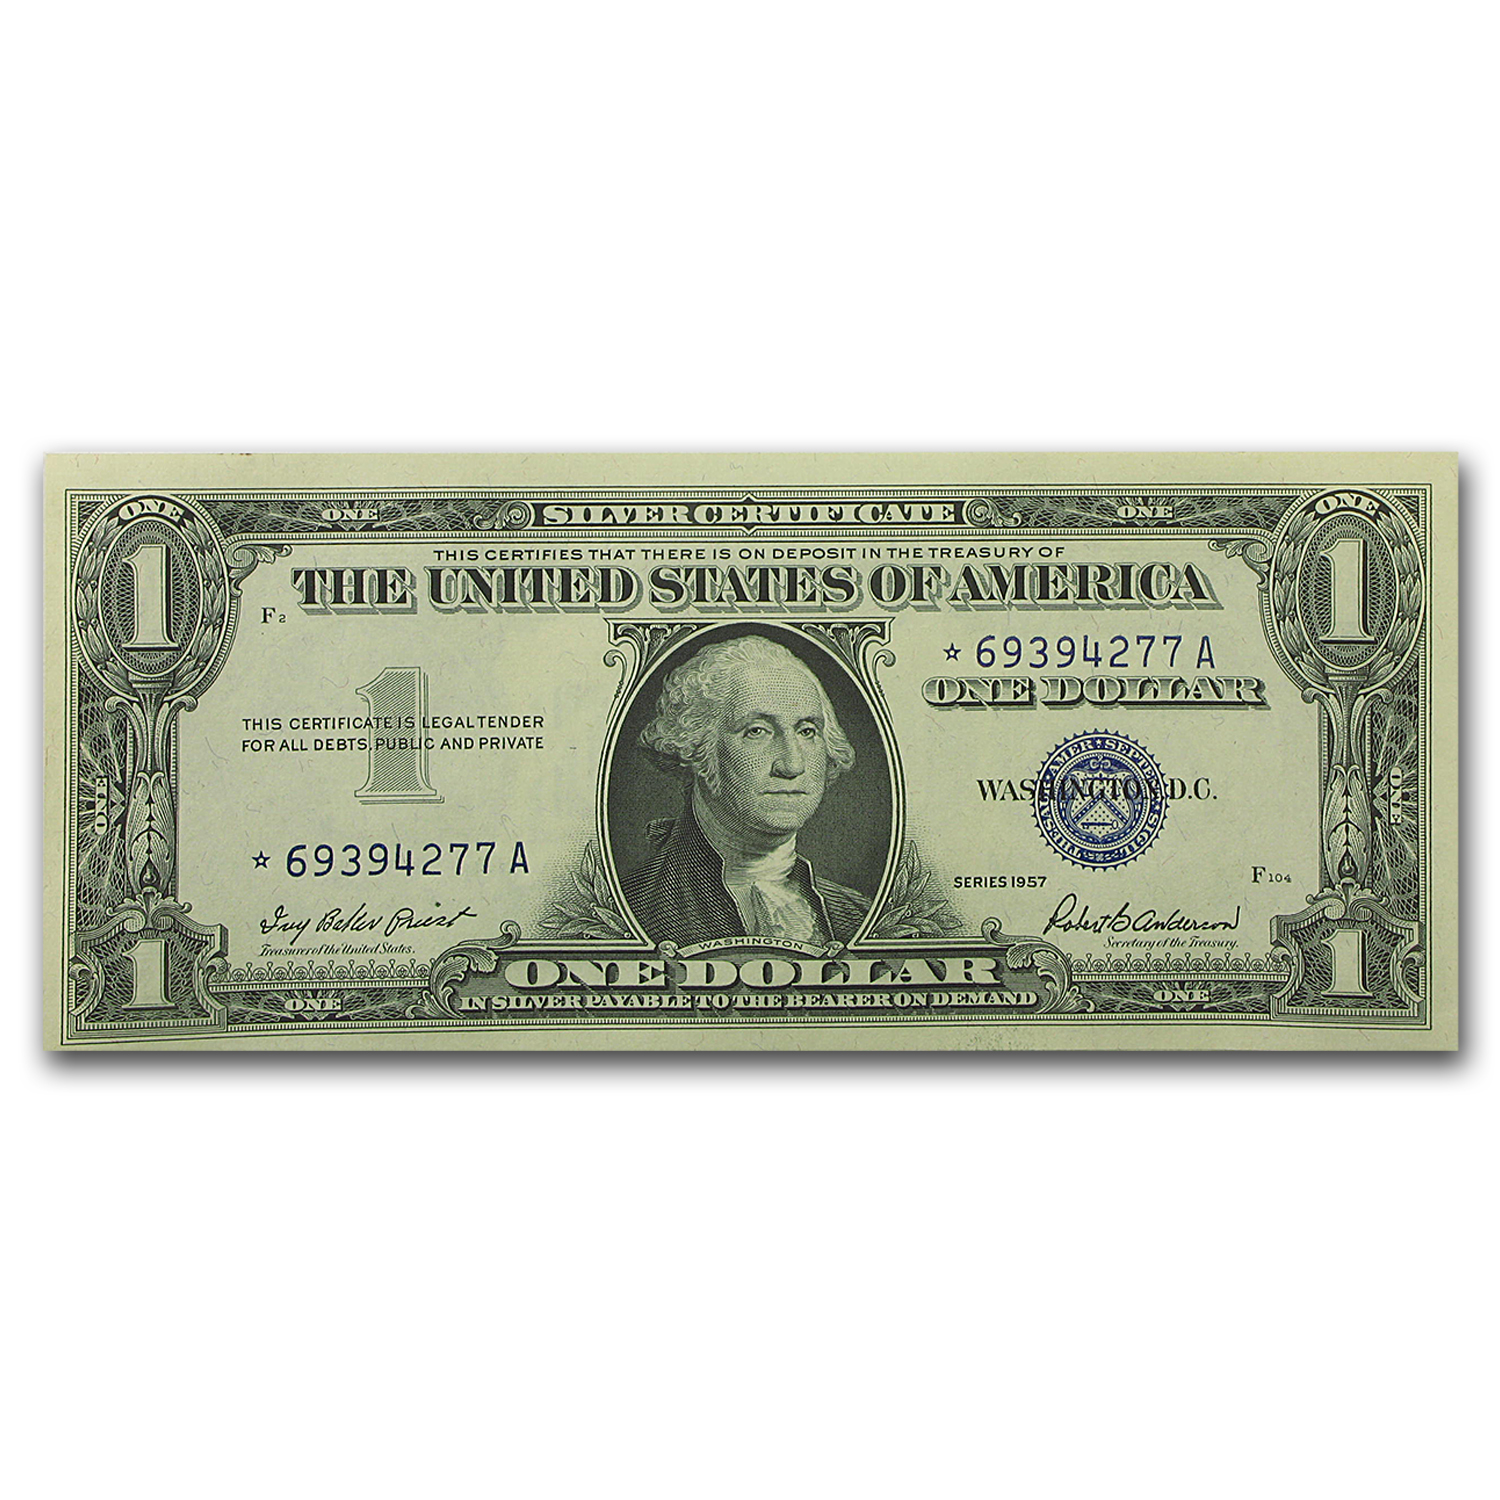 1957* $1.00 Silver Certificate CCU (47 Consecutive Notes)